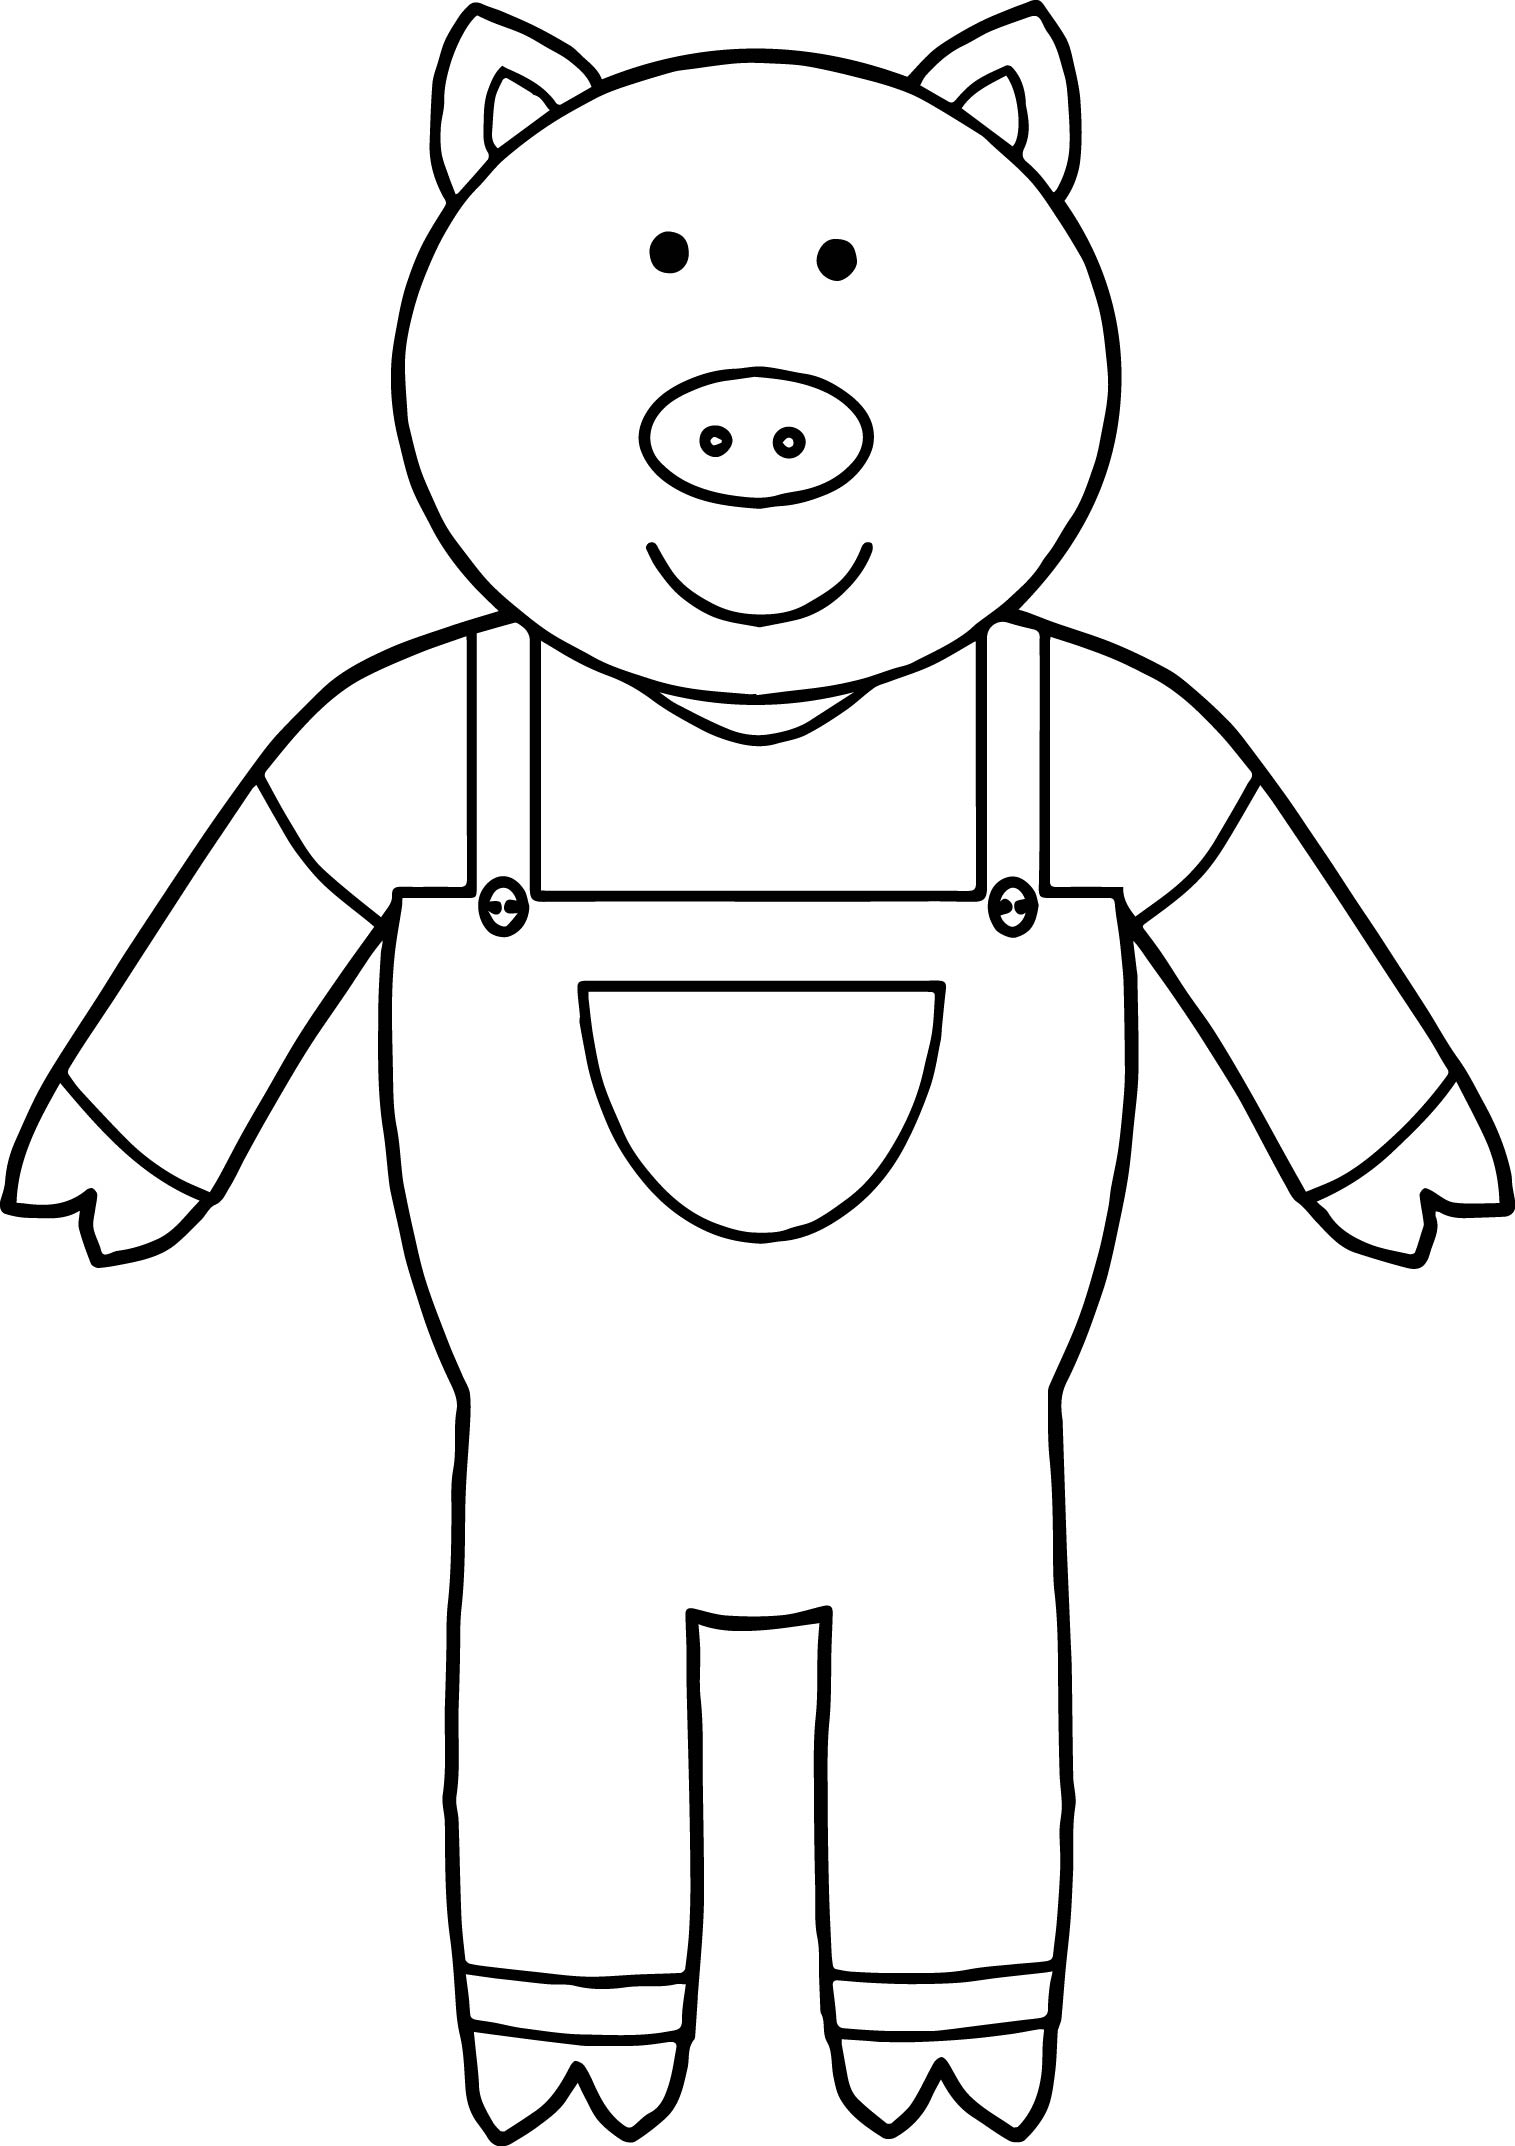 one 3 little pigs coloring page wecoloringpage